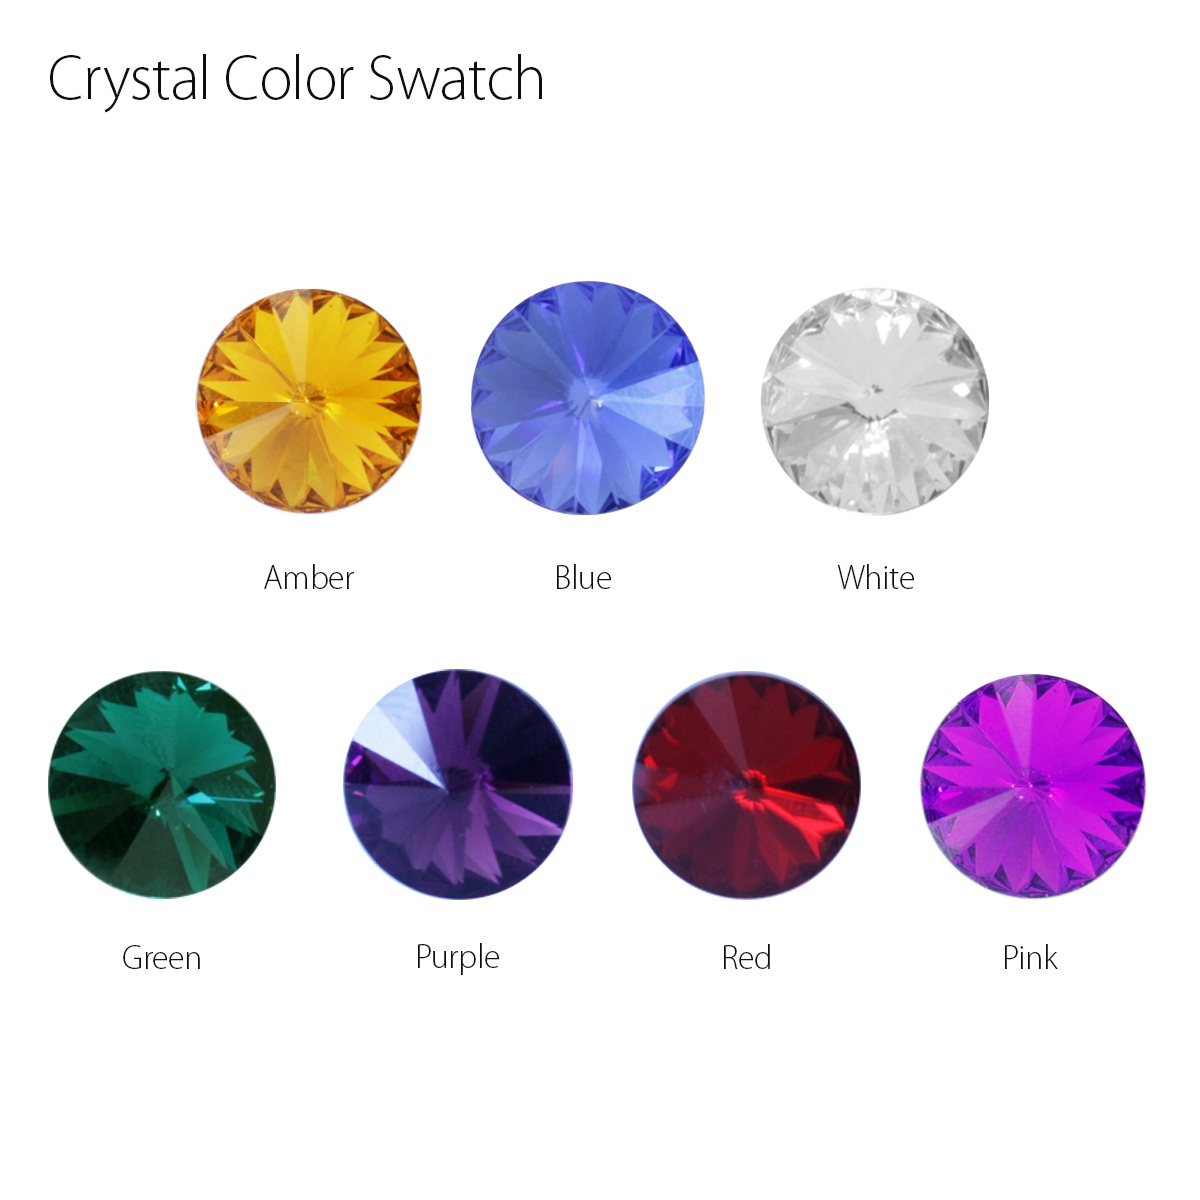 Tire Valve Stem Cover Crystal Color Swatch